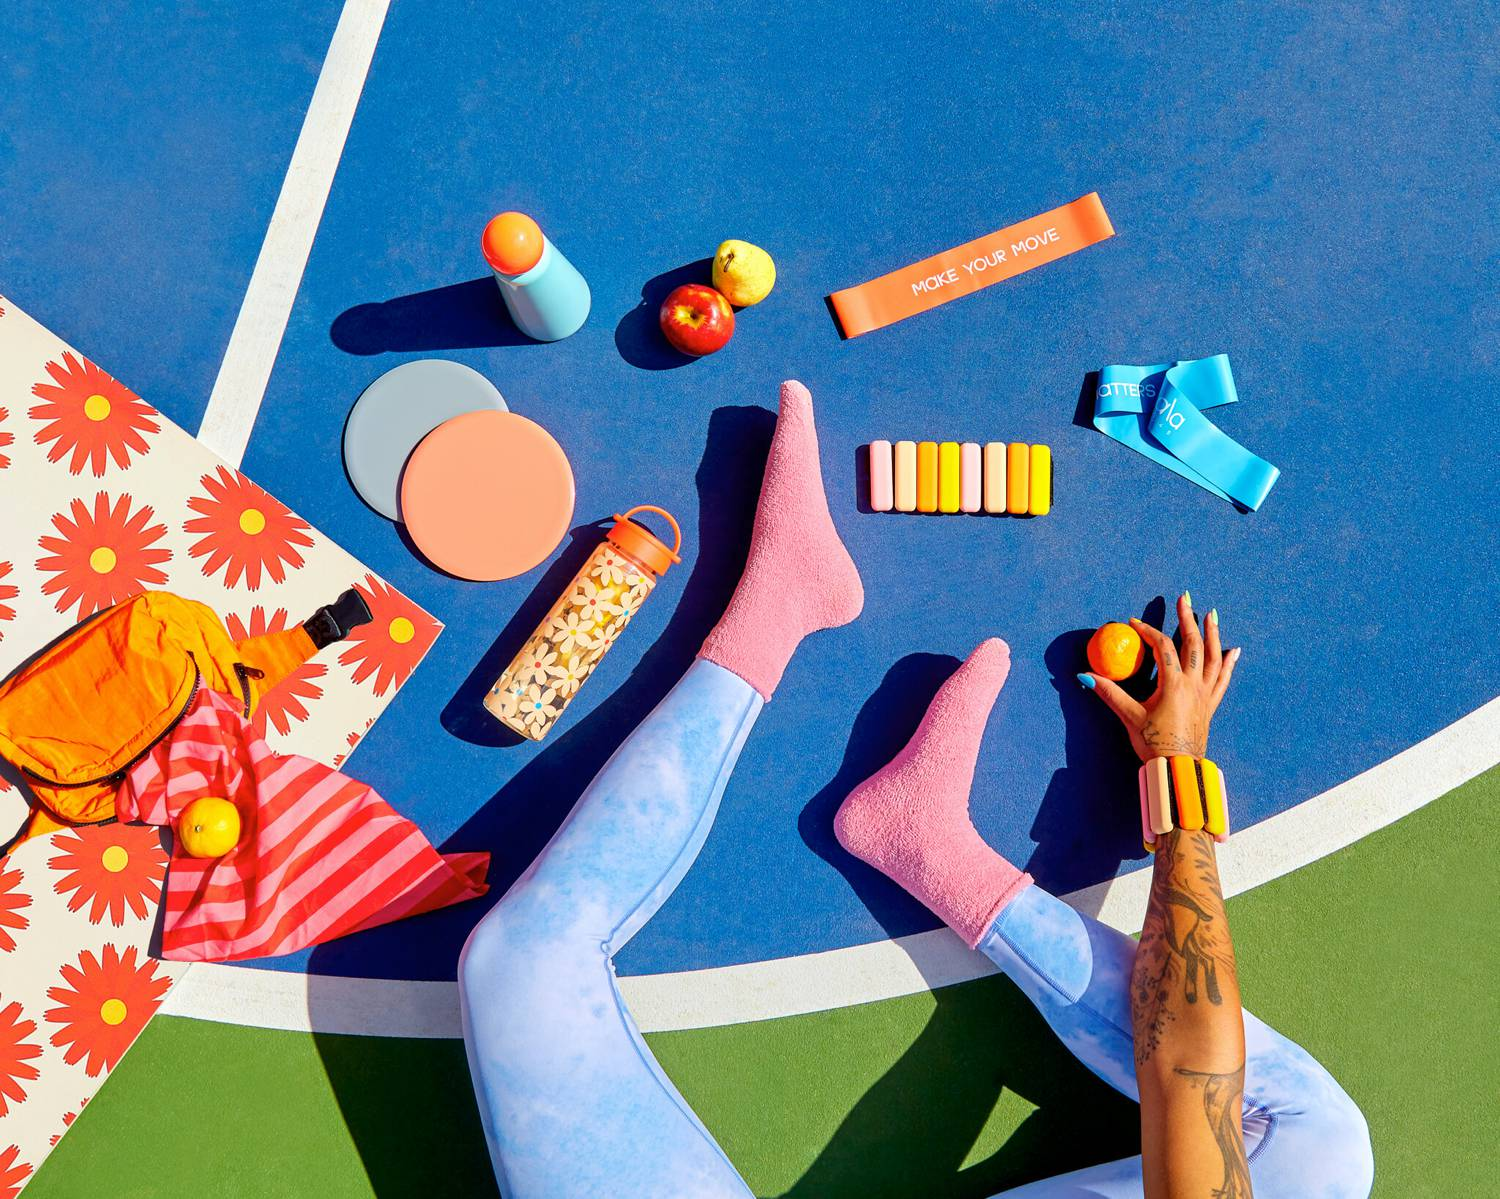 Photo: Tropico's brightly-colored photographs depict products and people like never before